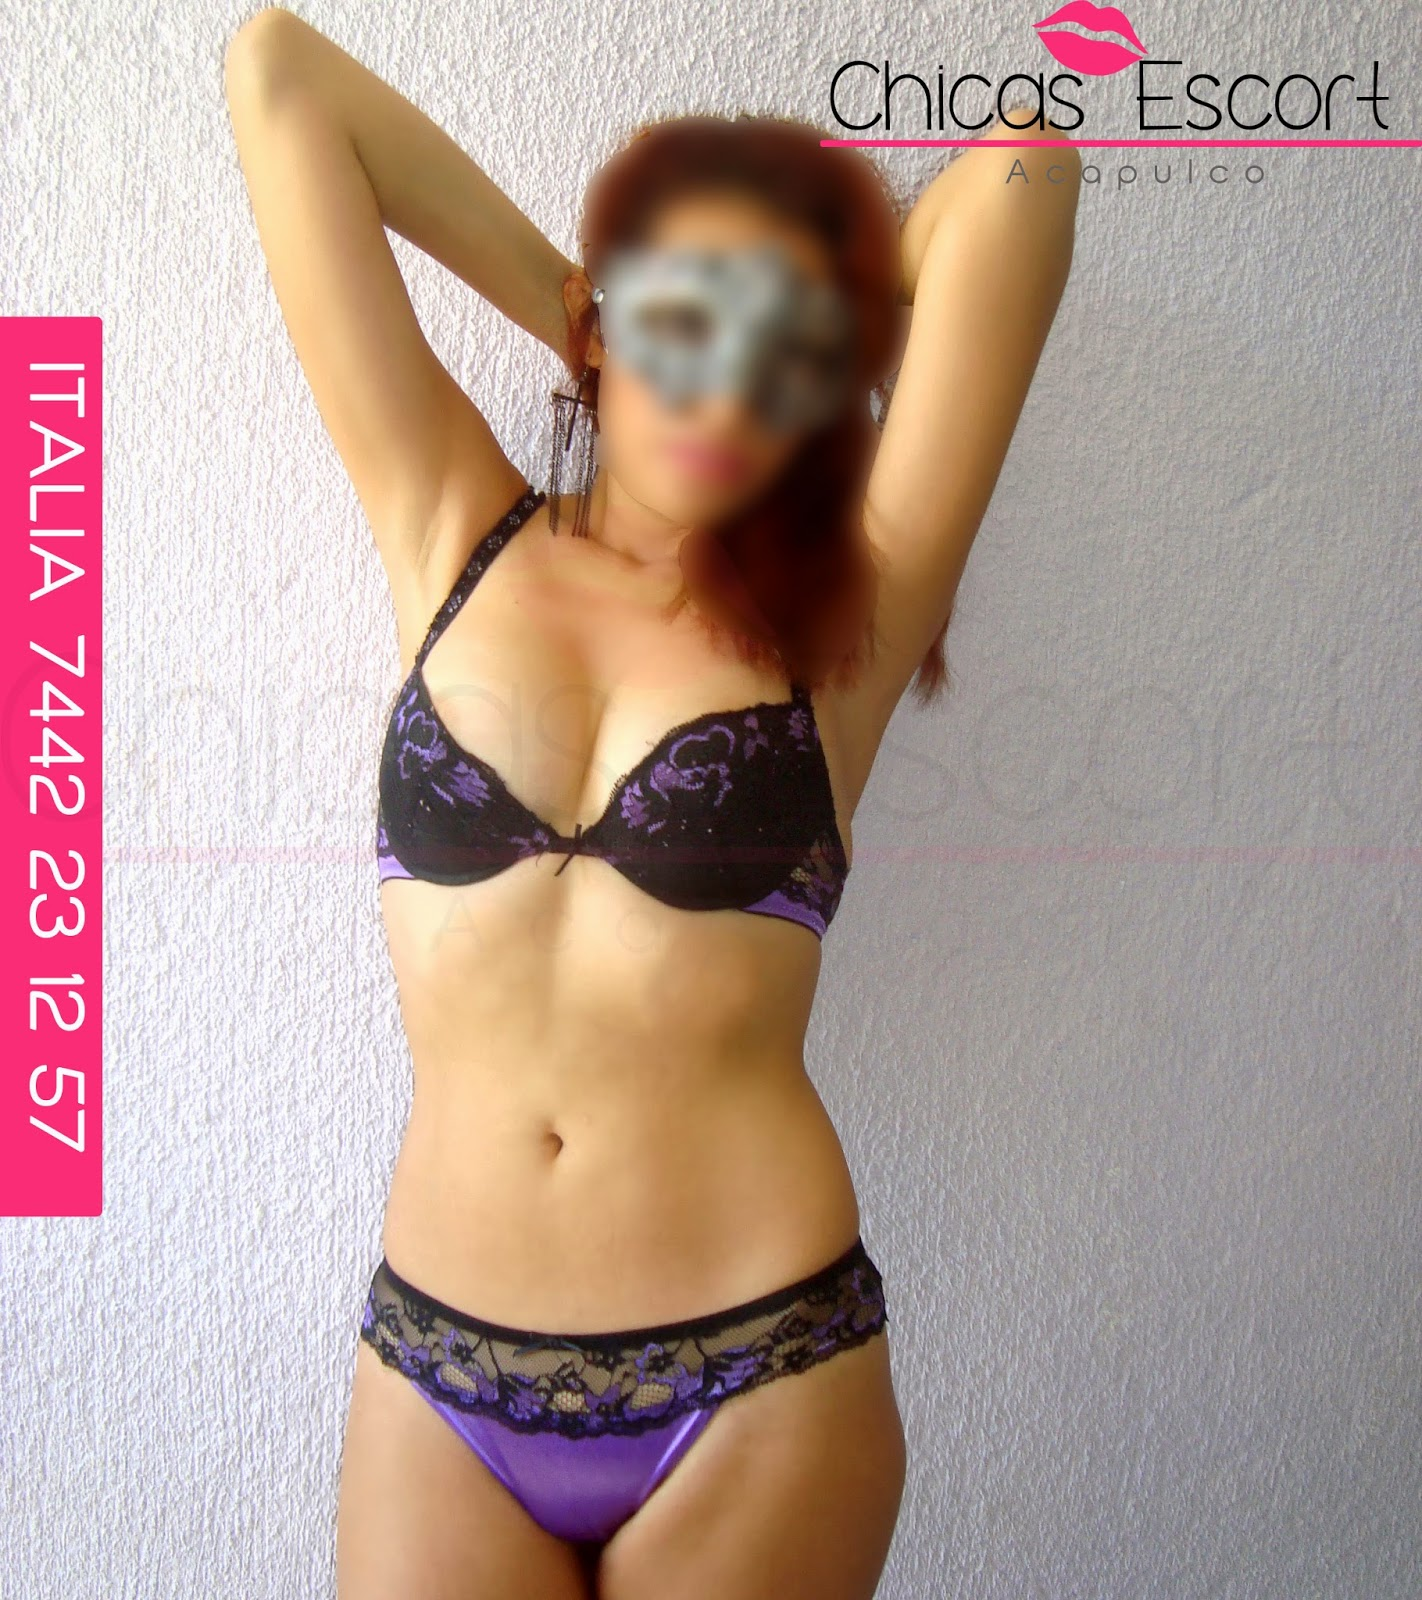 acapulco escorts